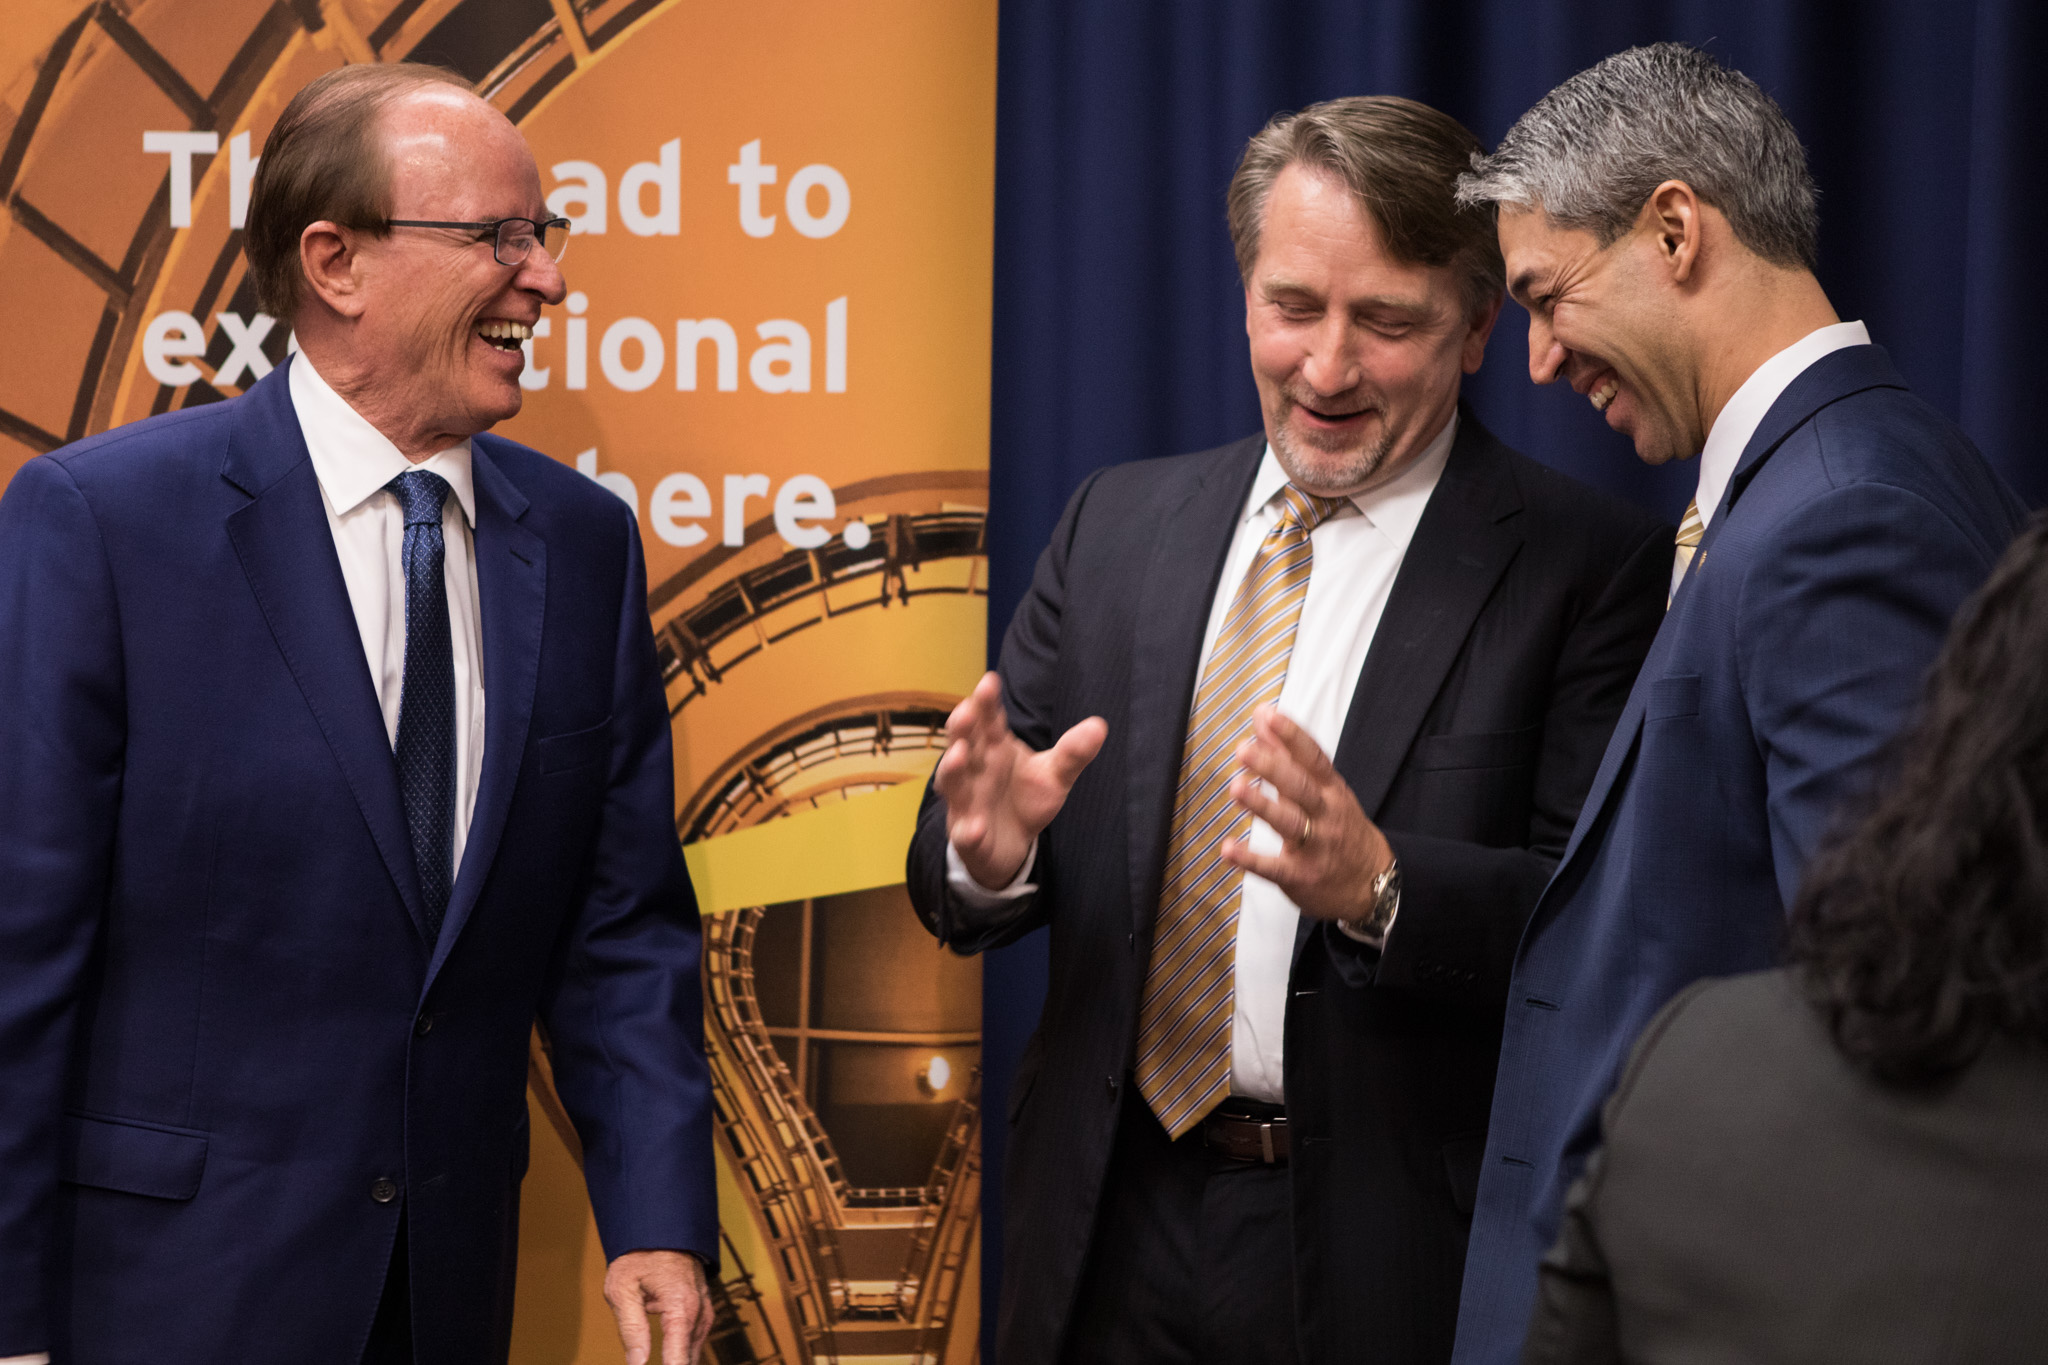 (From left) Bexar County Judge Nelson Wolff, Ernst & Young LLP San Antonio Financial Services Organization Southwest Market Segment Leader Jeff Rummel, and Mayor Ron Nirenberg share a laugh after the official approval of an incentive package for Ernst & Young financial services client service delivery center.